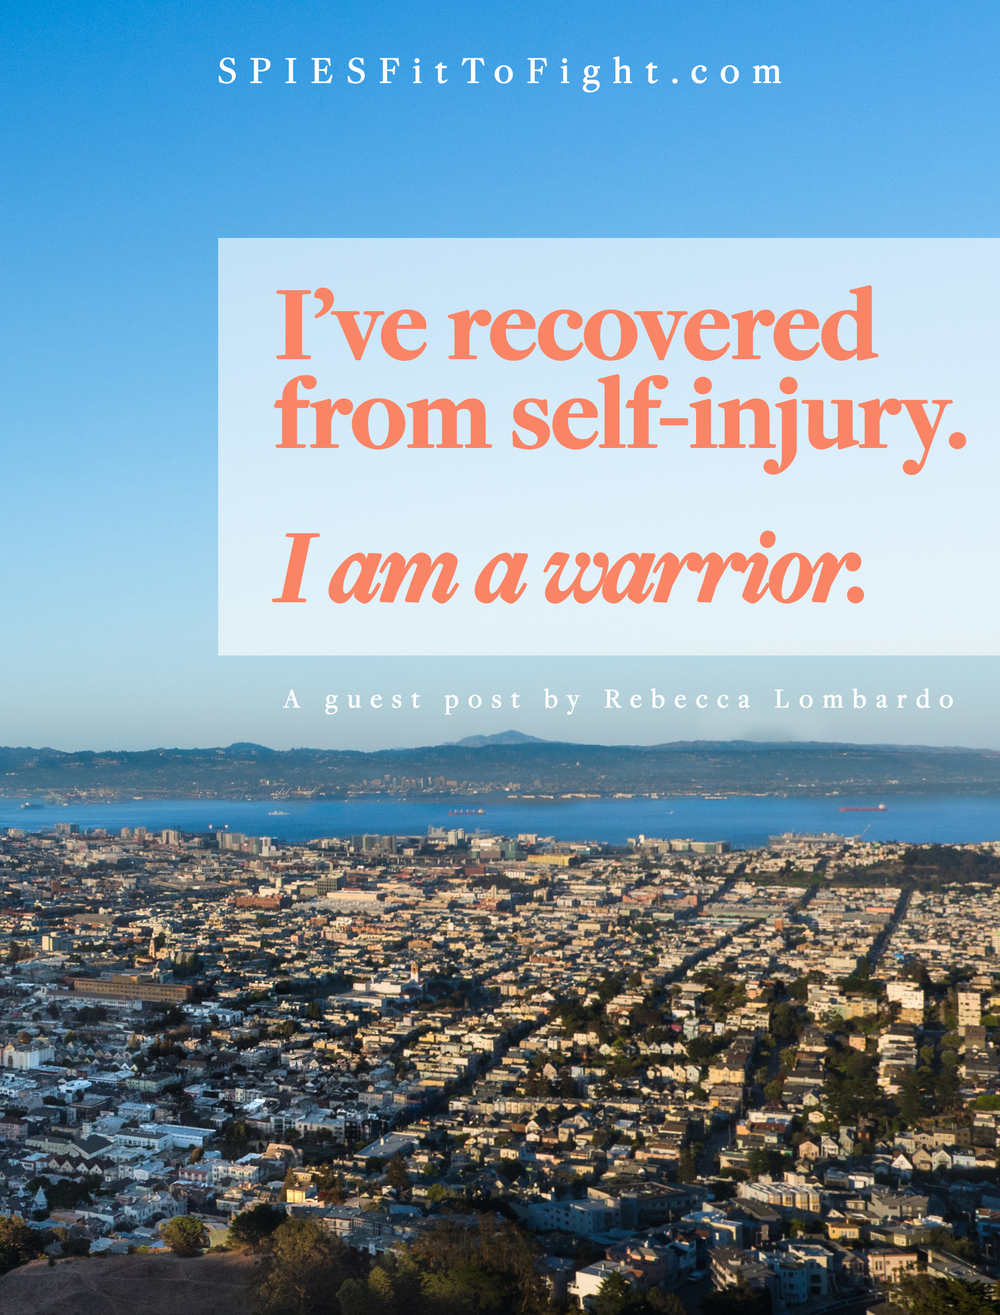 I've recovered from self-injury. I am a warrior. Read more of Rebecca Lombardo's guest post on SPIESFitToFight.com